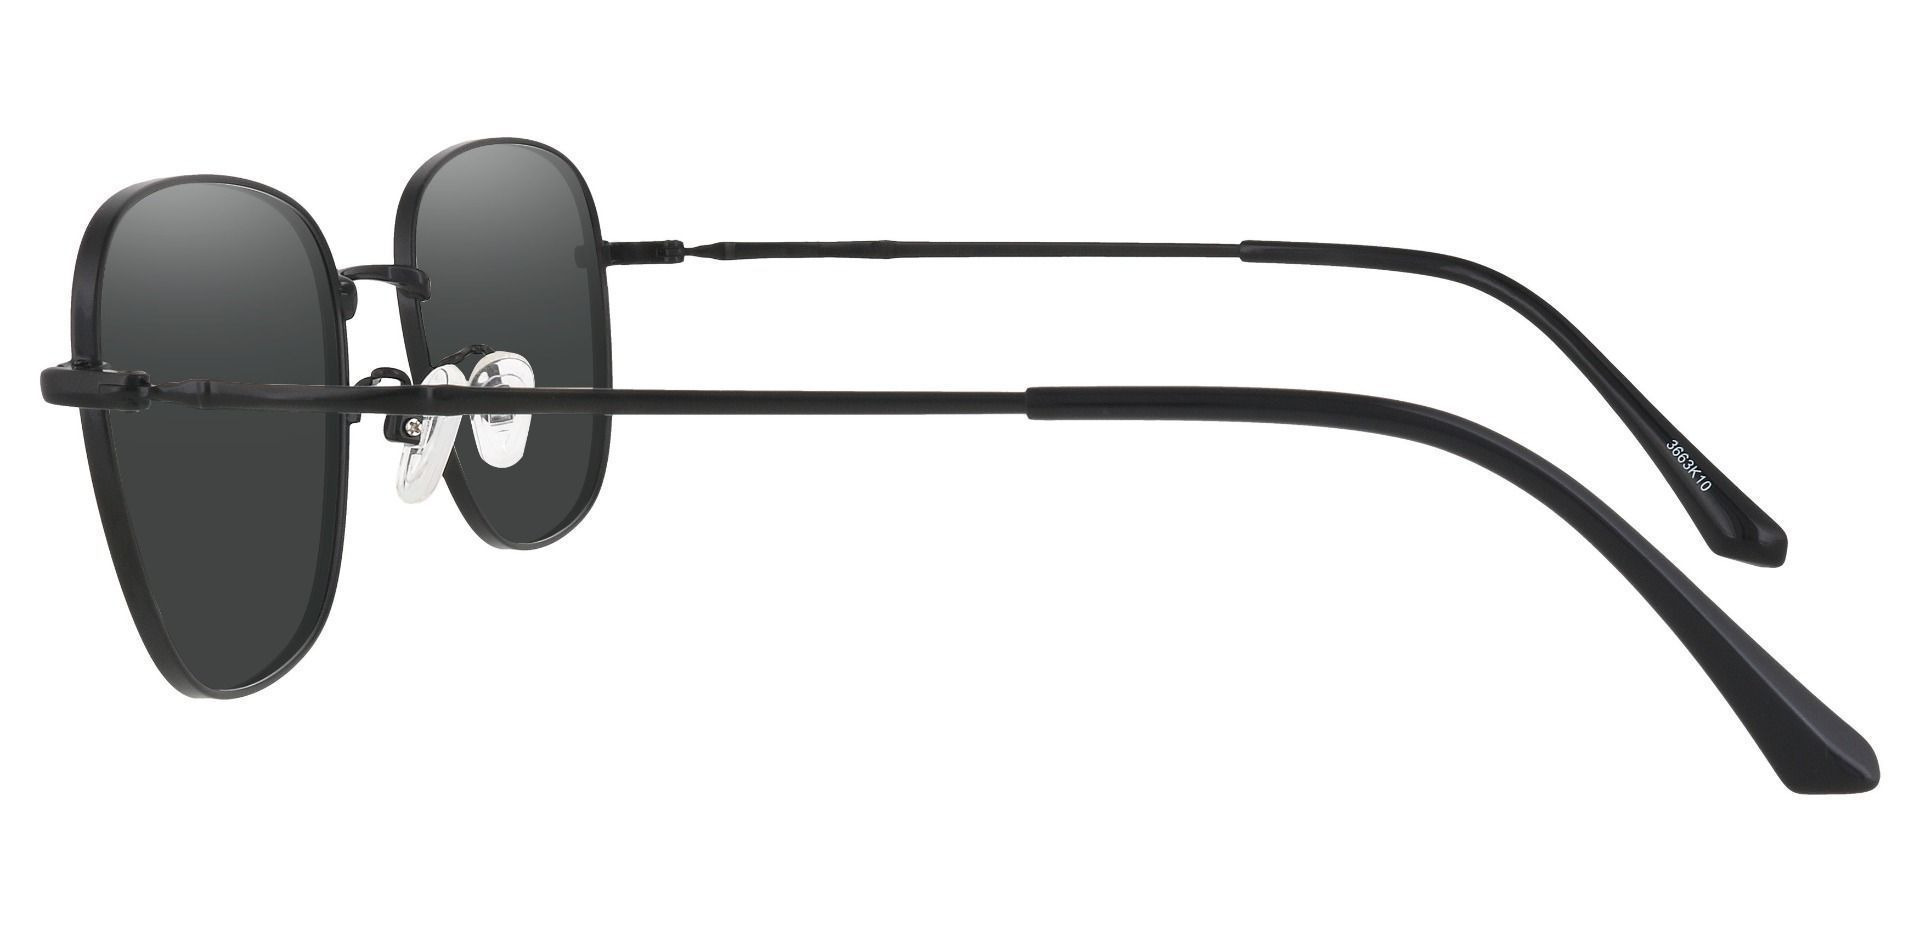 Fresno Square Prescription Sunglasses - Black Frame With Gray Lenses